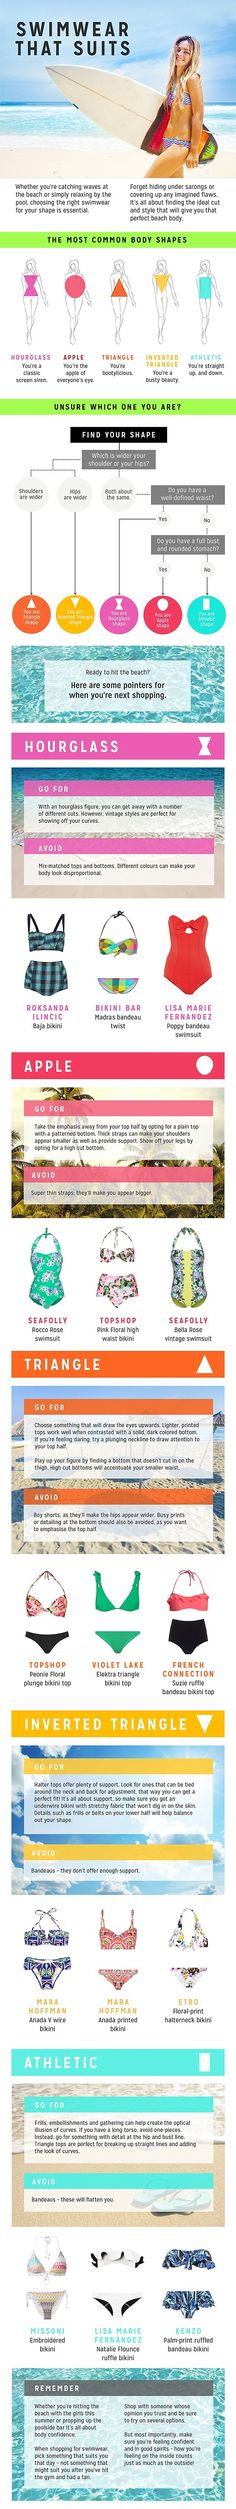 How to find the right swimsuit for your body type #infographic